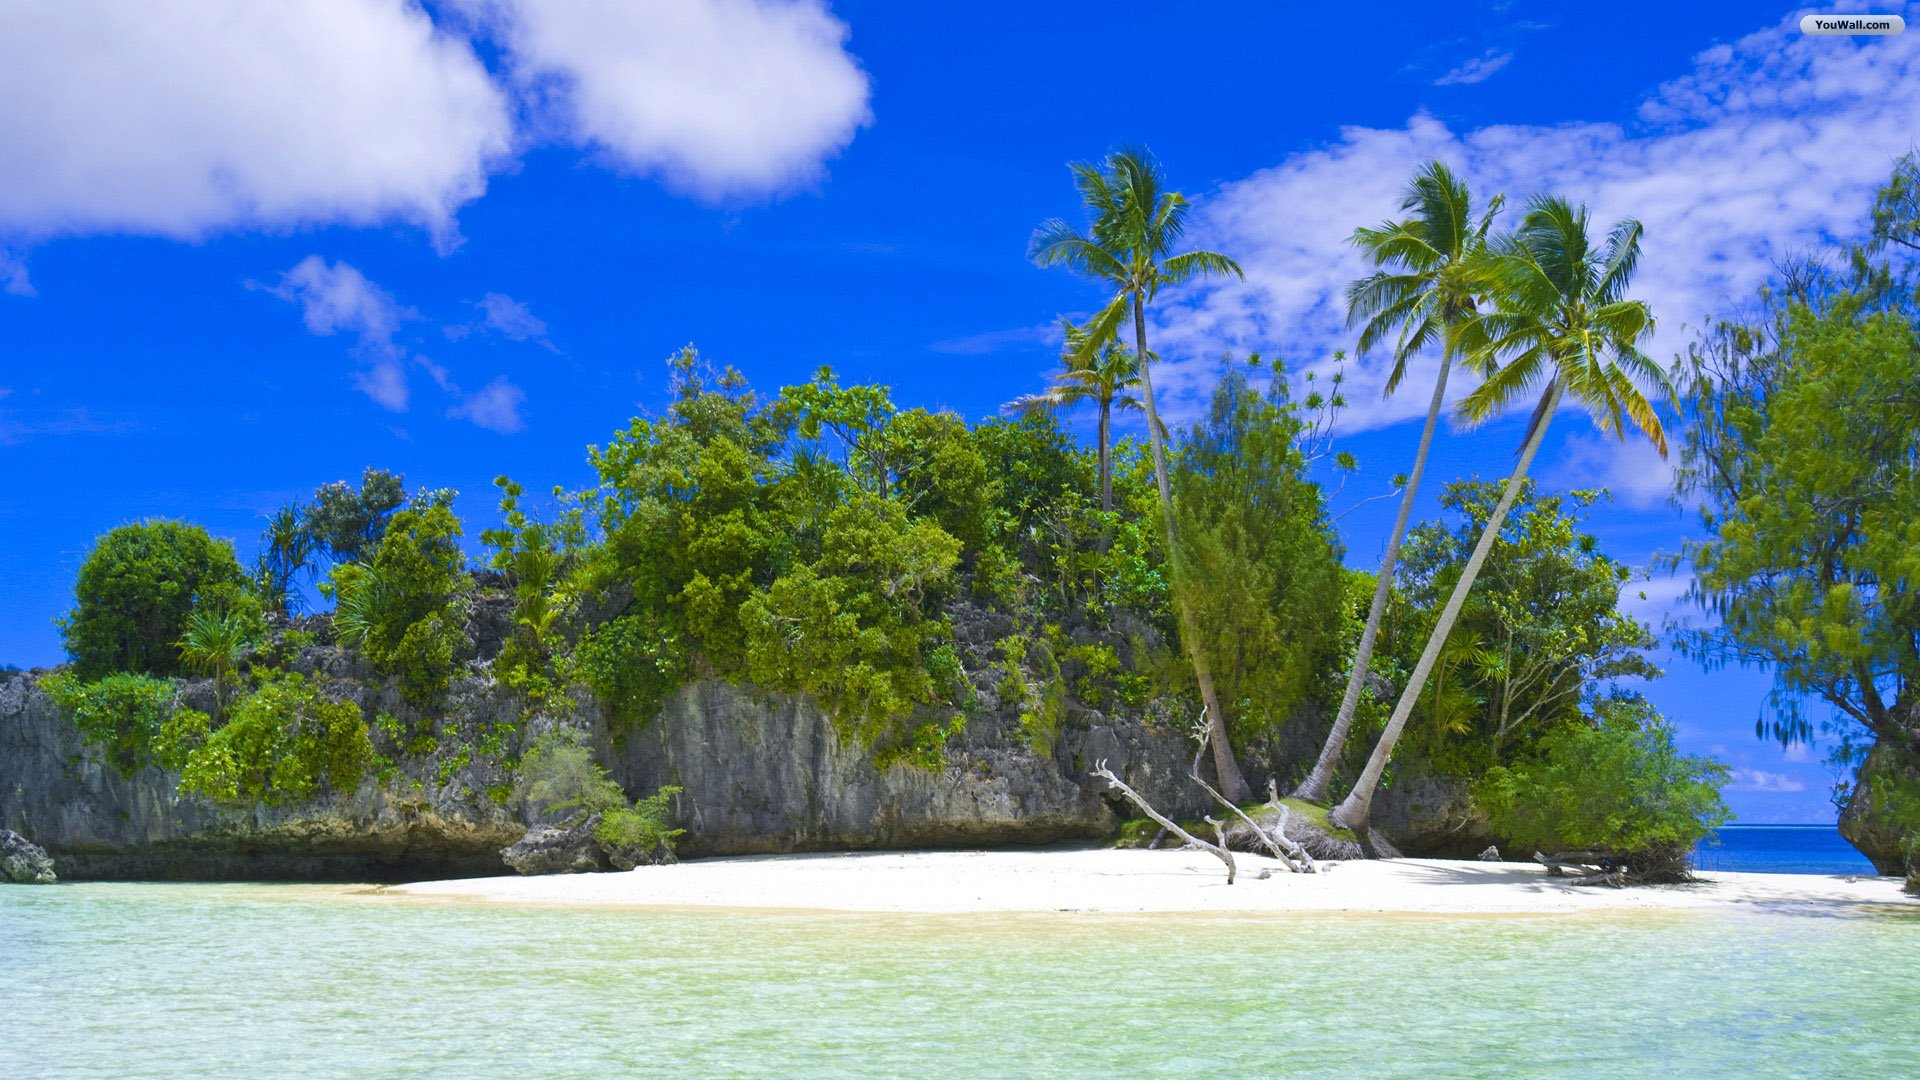 Tropical Island Wallpaper   wallpaperwallpapersfree wallpaper 1920x1080